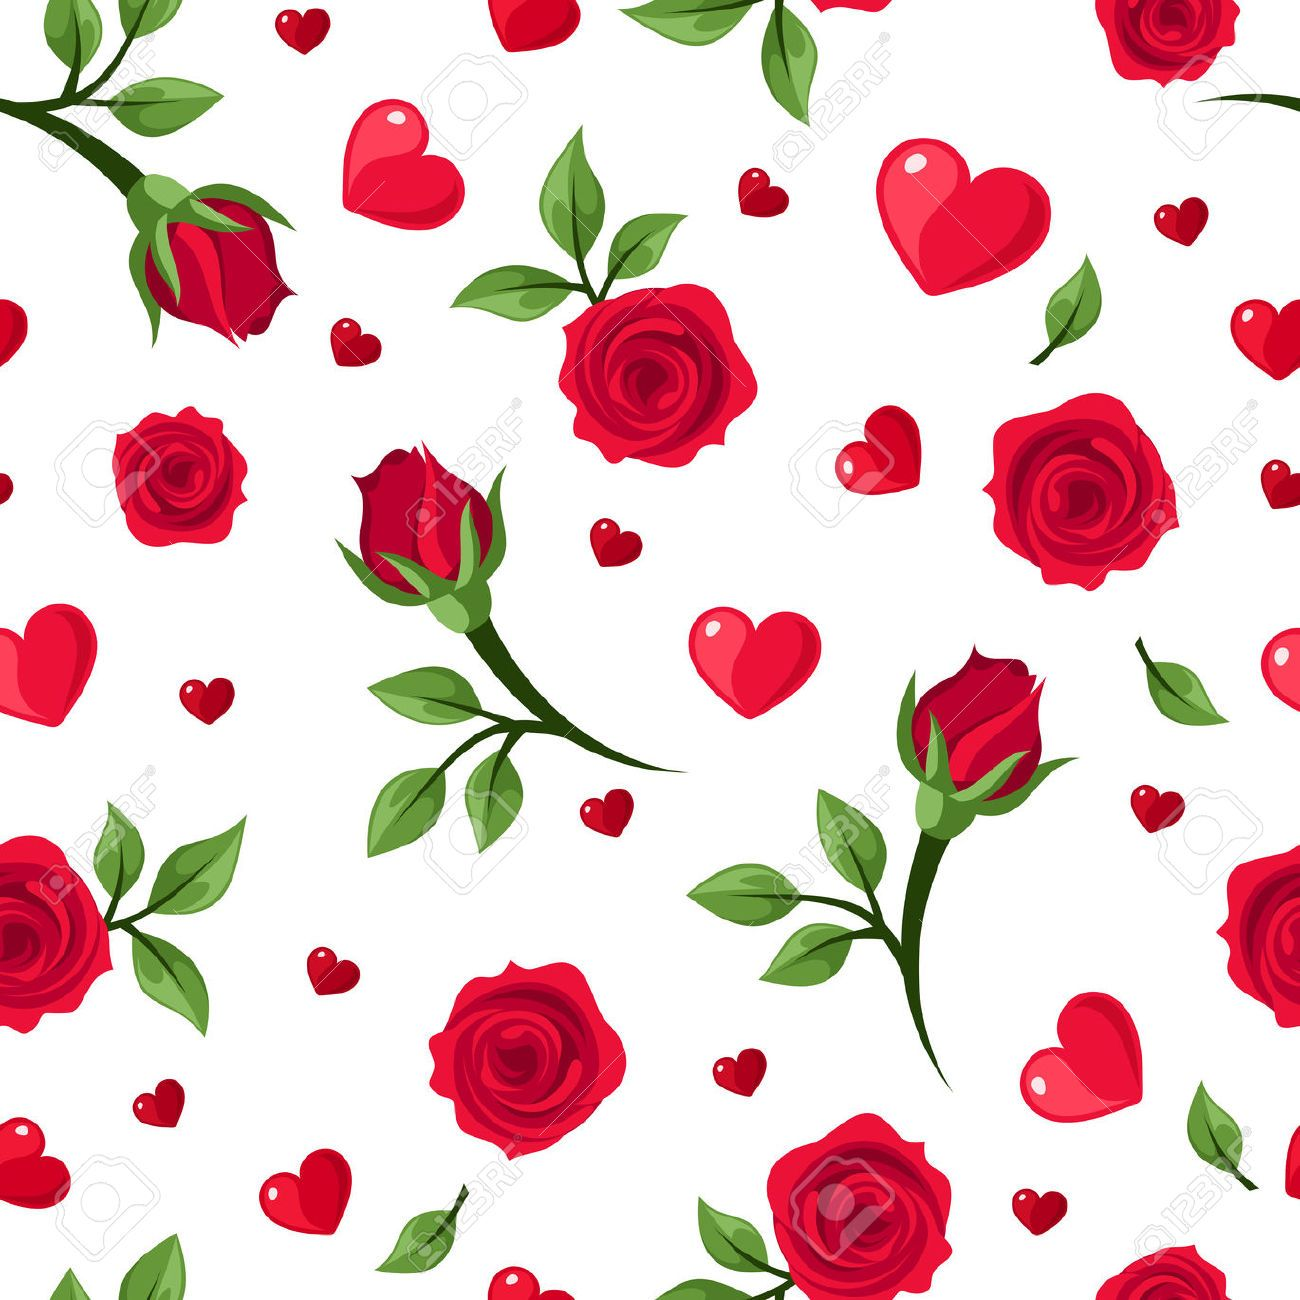 Red Roses Background Wallpaper Patterns Designs Designer Seamless